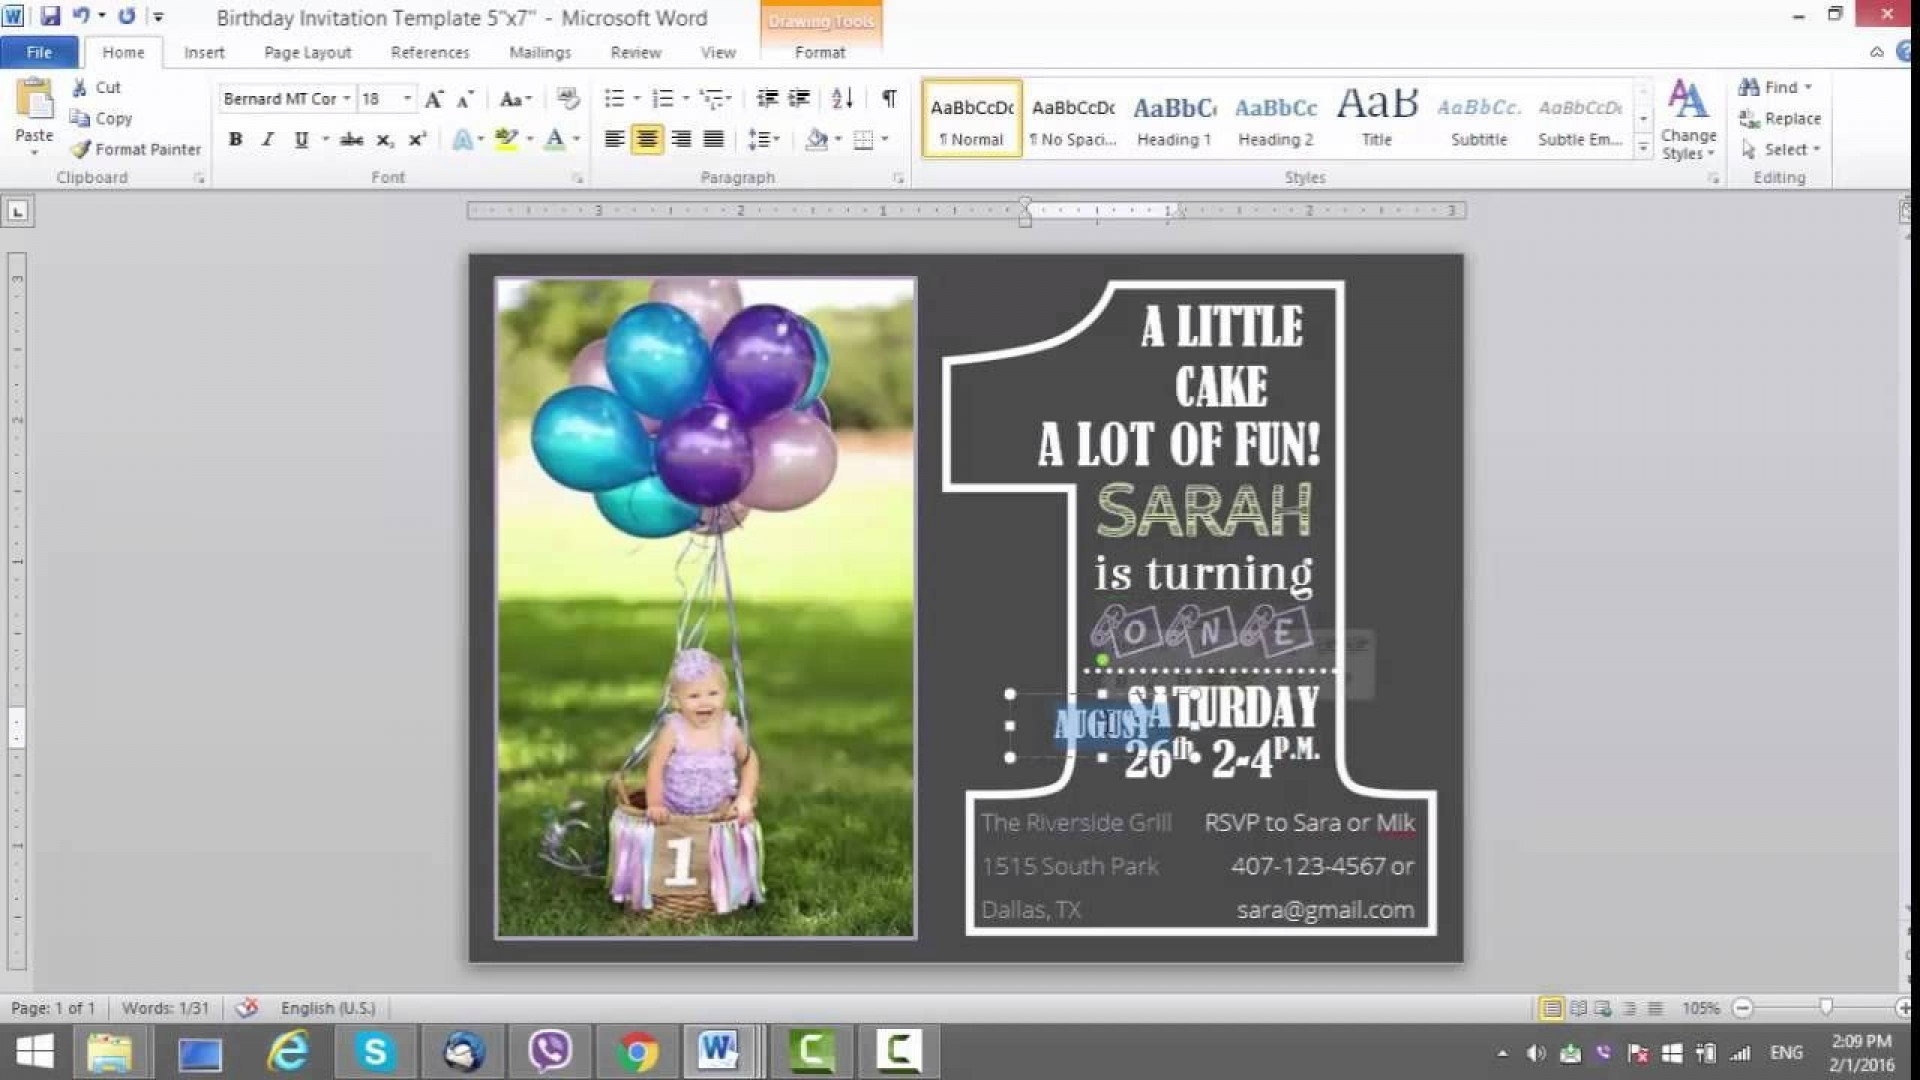 006 Beautiful Blank Birthday Invitation Template For Microsoft Word Photo 1920